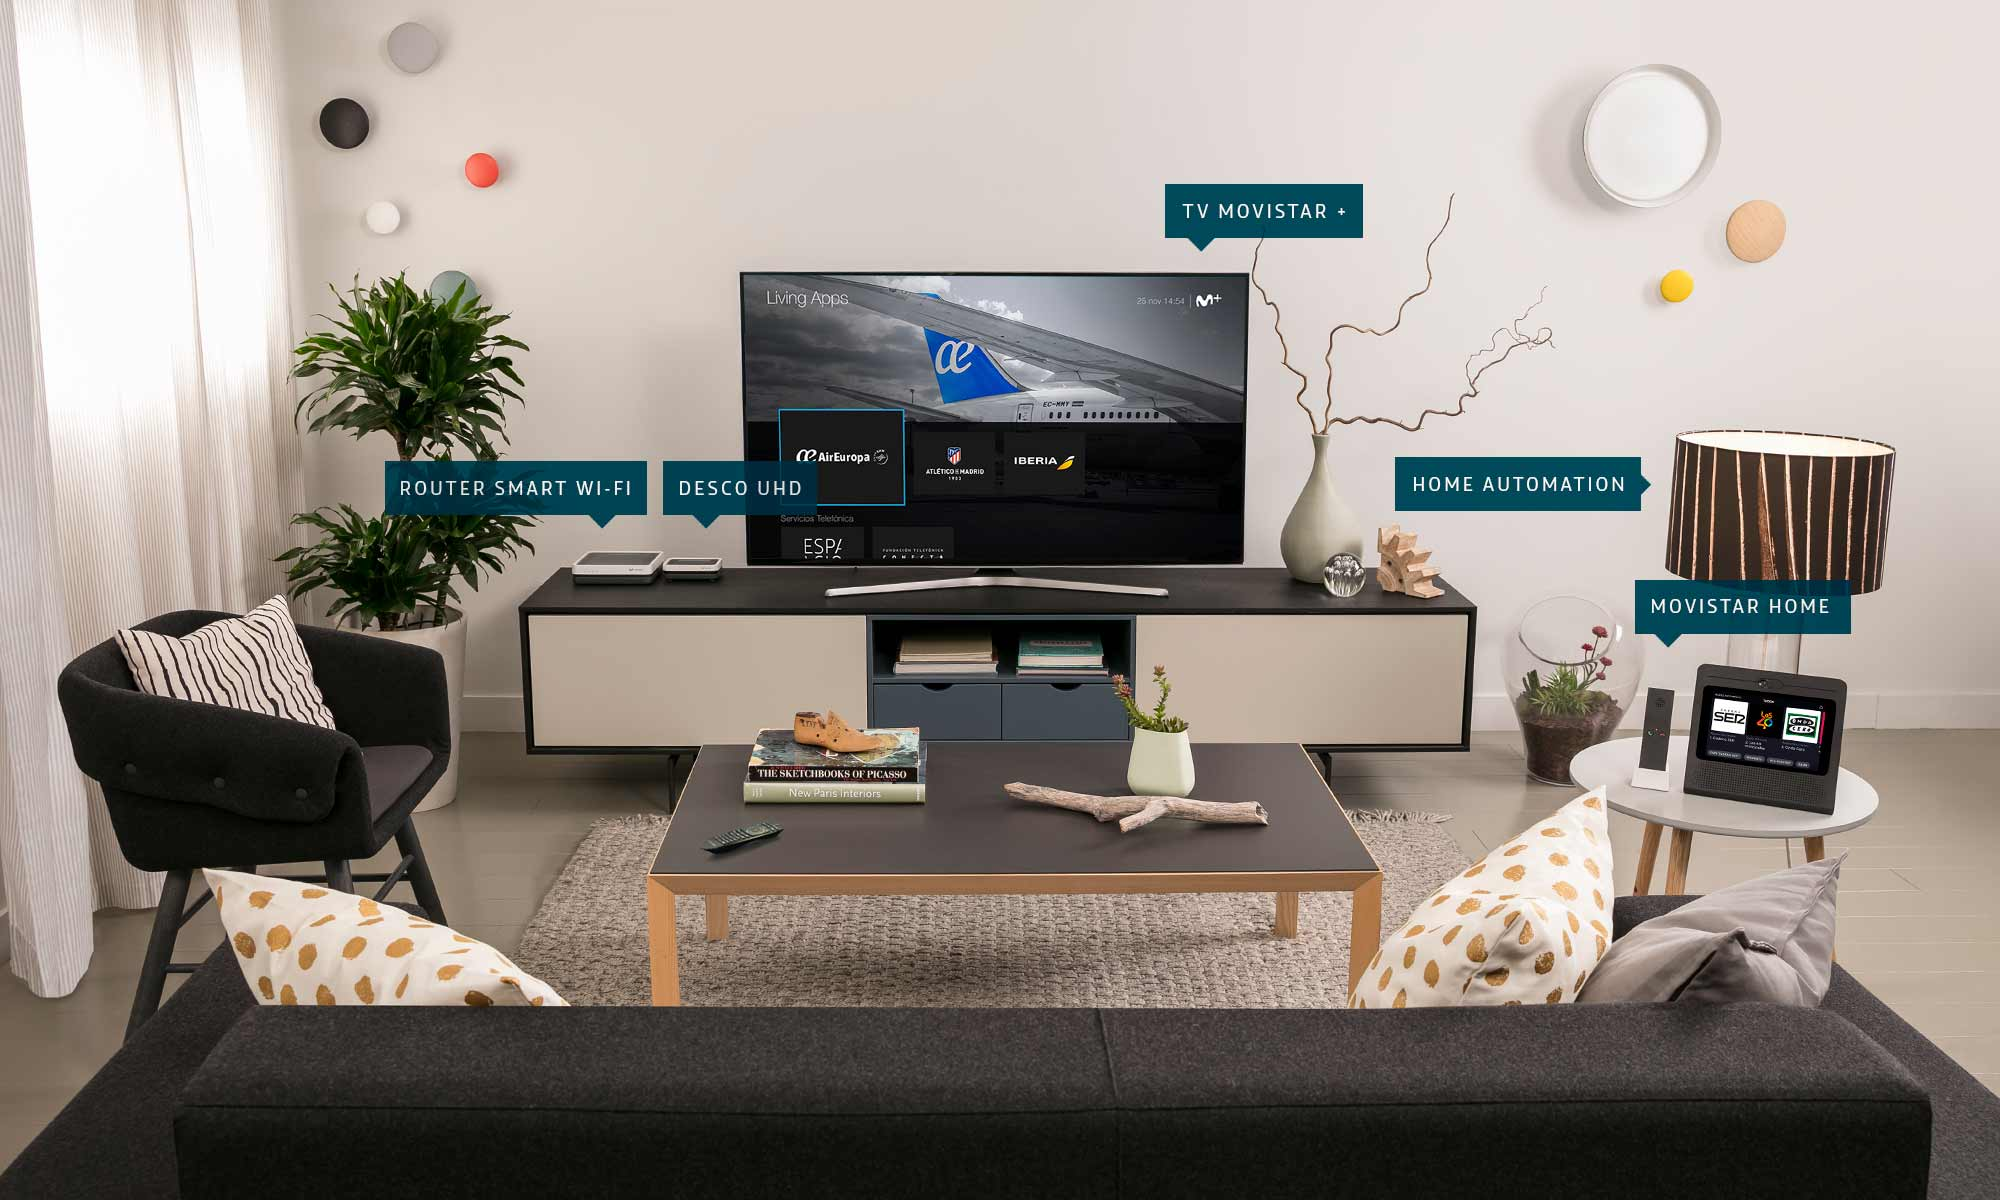 Discover our Home Ecosystem